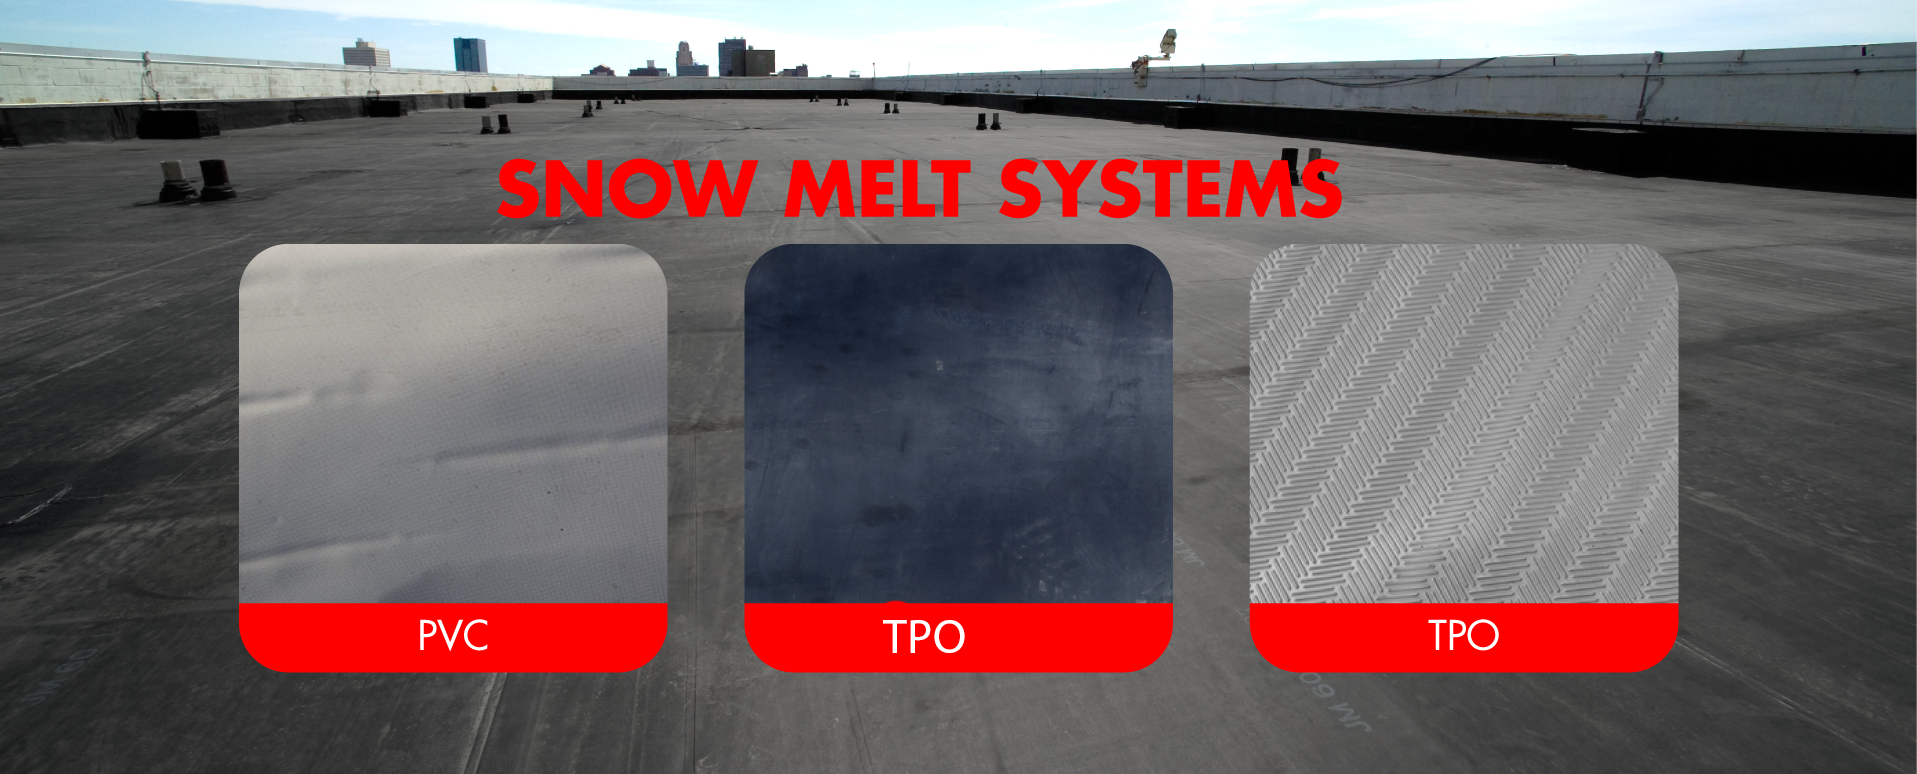 commercialflatroofpng - Flat Roof Systems